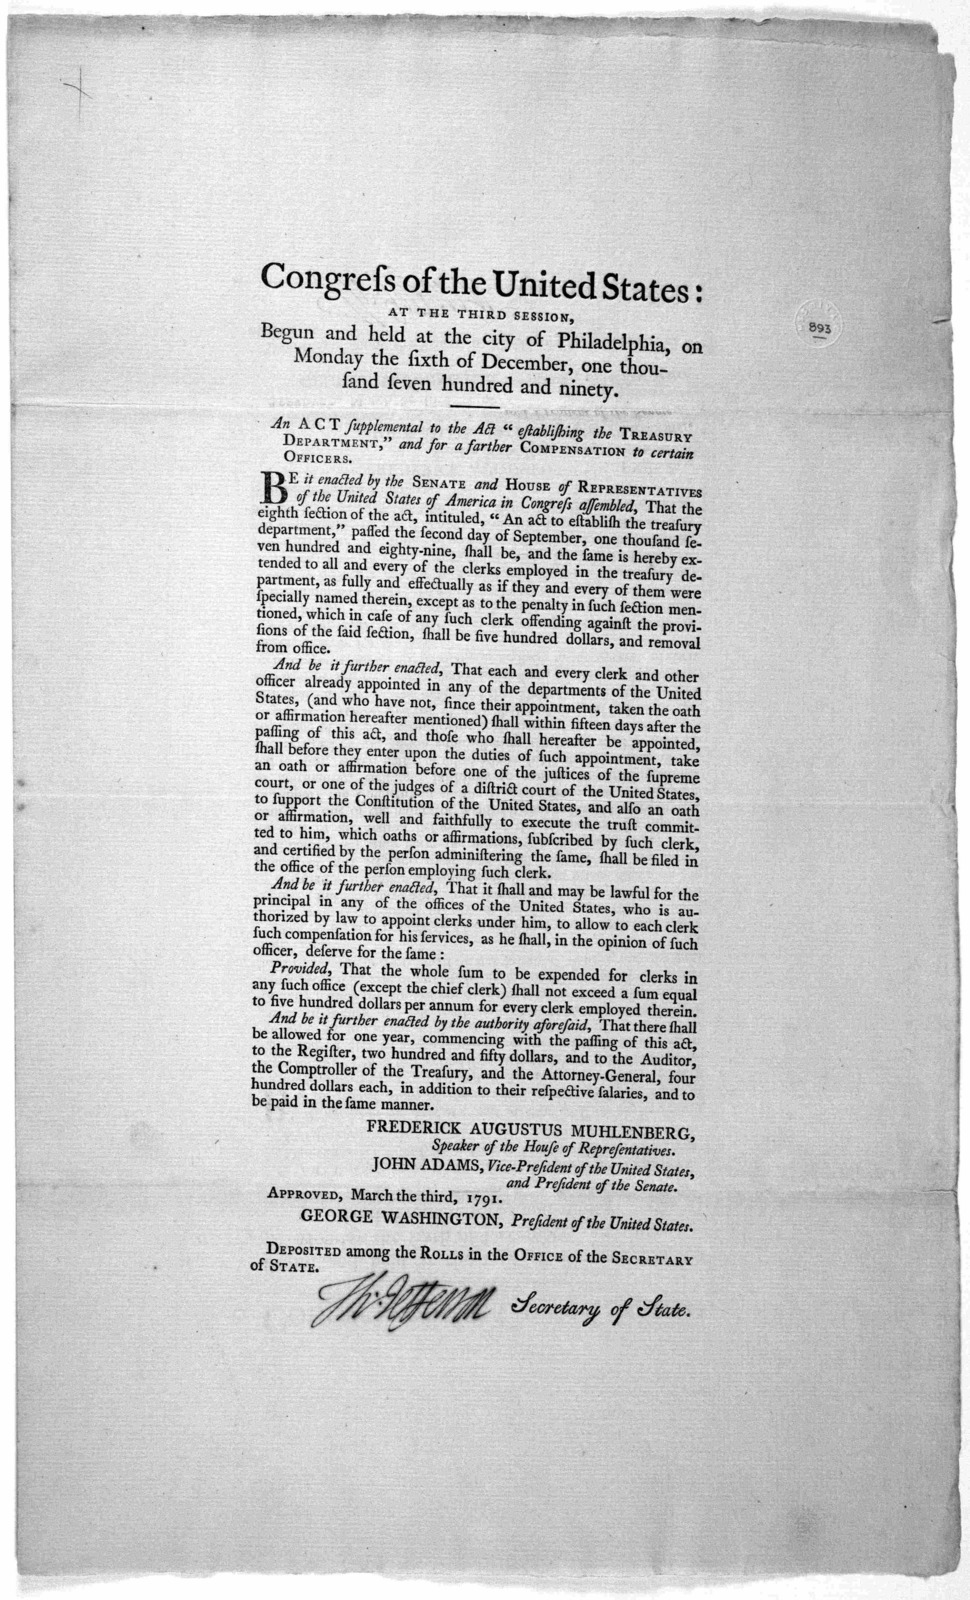 """Congress of the United States: at the third session, begun and held at the City of Philadelphia, on Monday the sixth of December, one thousand seven hundred and ninety. An act supplemental to the Act """"establishing the Treasury Department"""" and fo"""